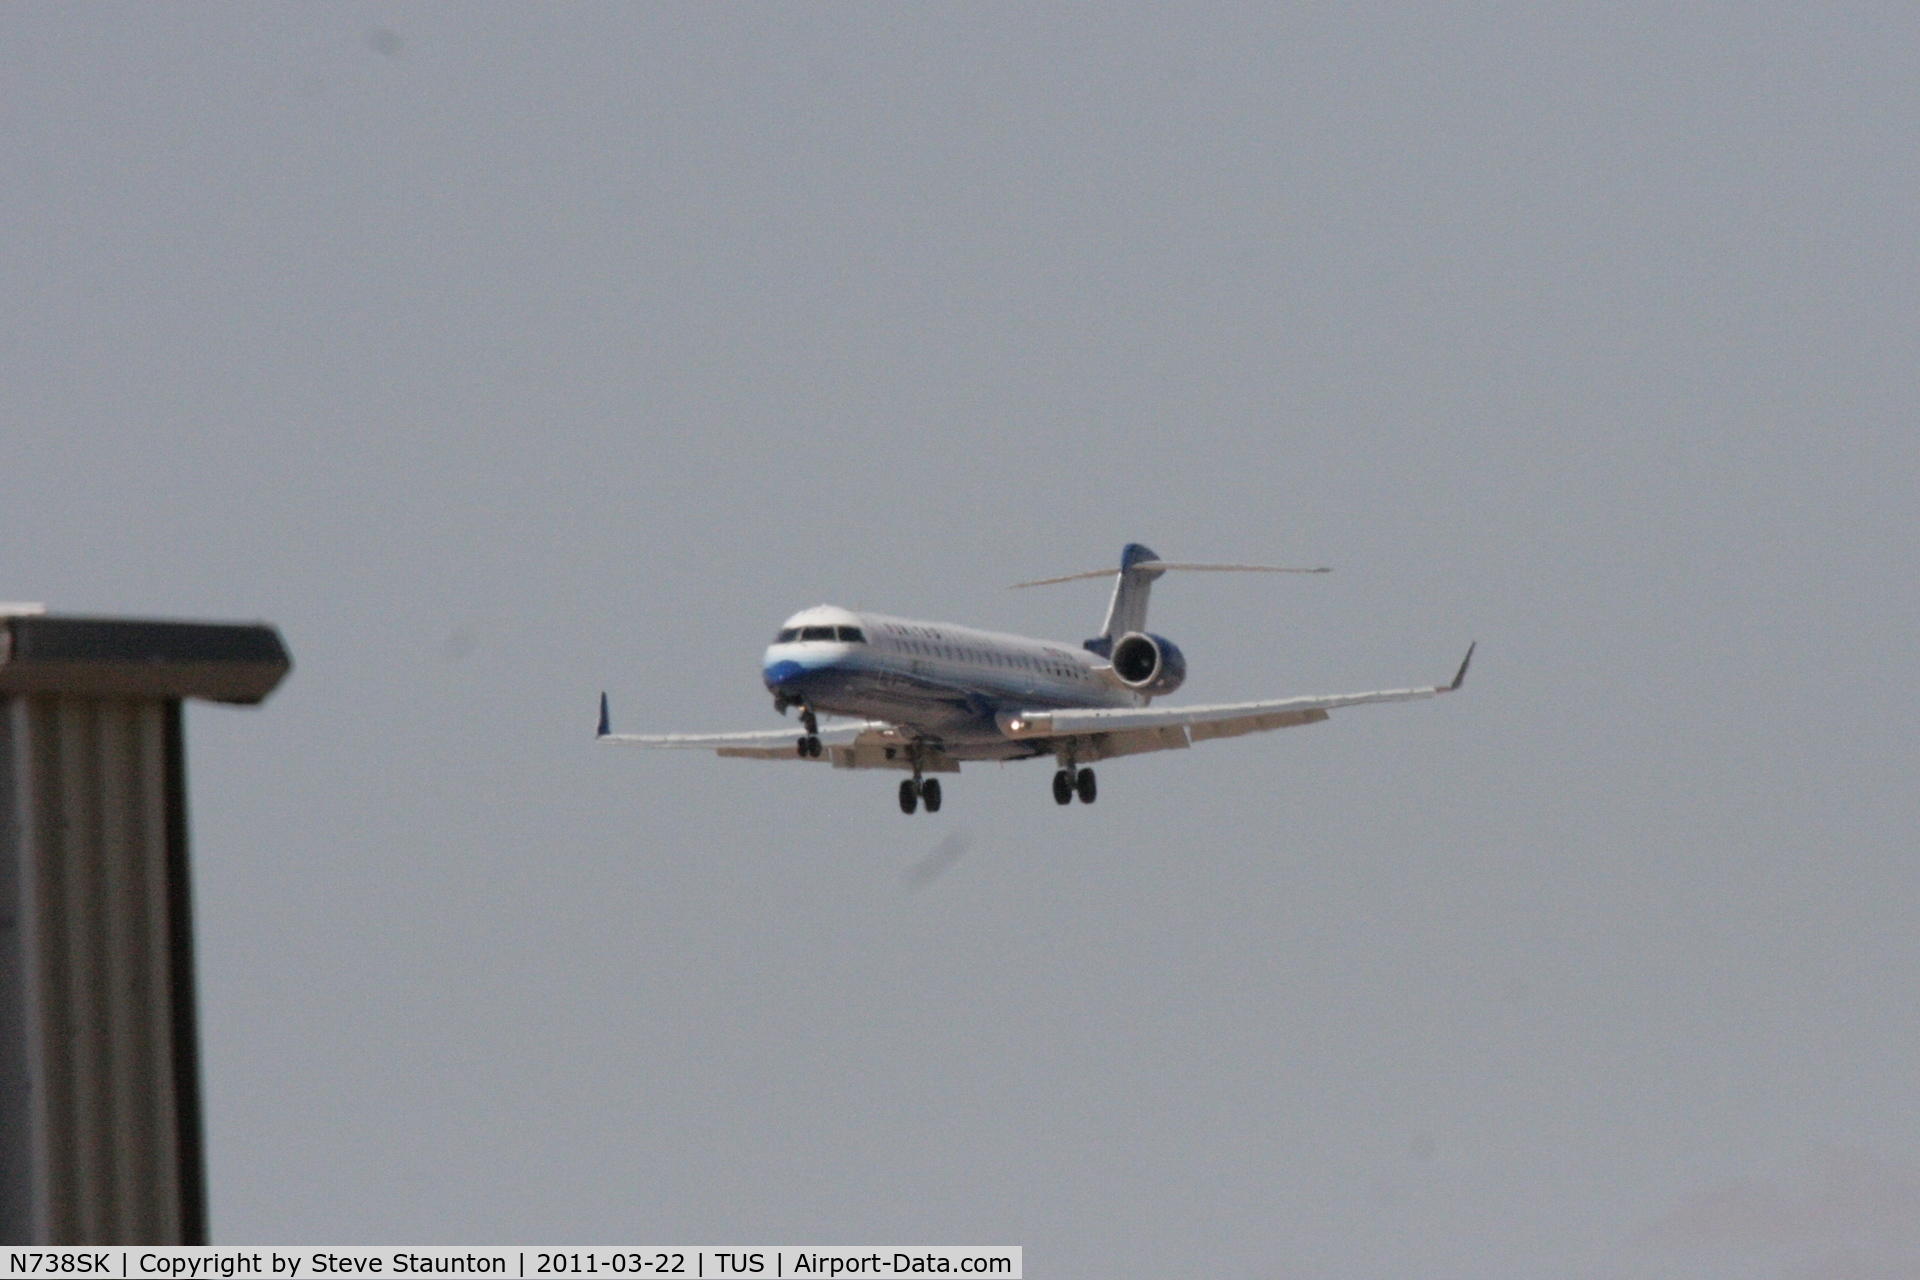 N738SK, 2005 Bombardier CRJ-700 (CL-600-2C10) Regional Jet C/N 10195, Taken at Tucson International Airport, in March 2011 whilst on an Aeroprint Aviation tour